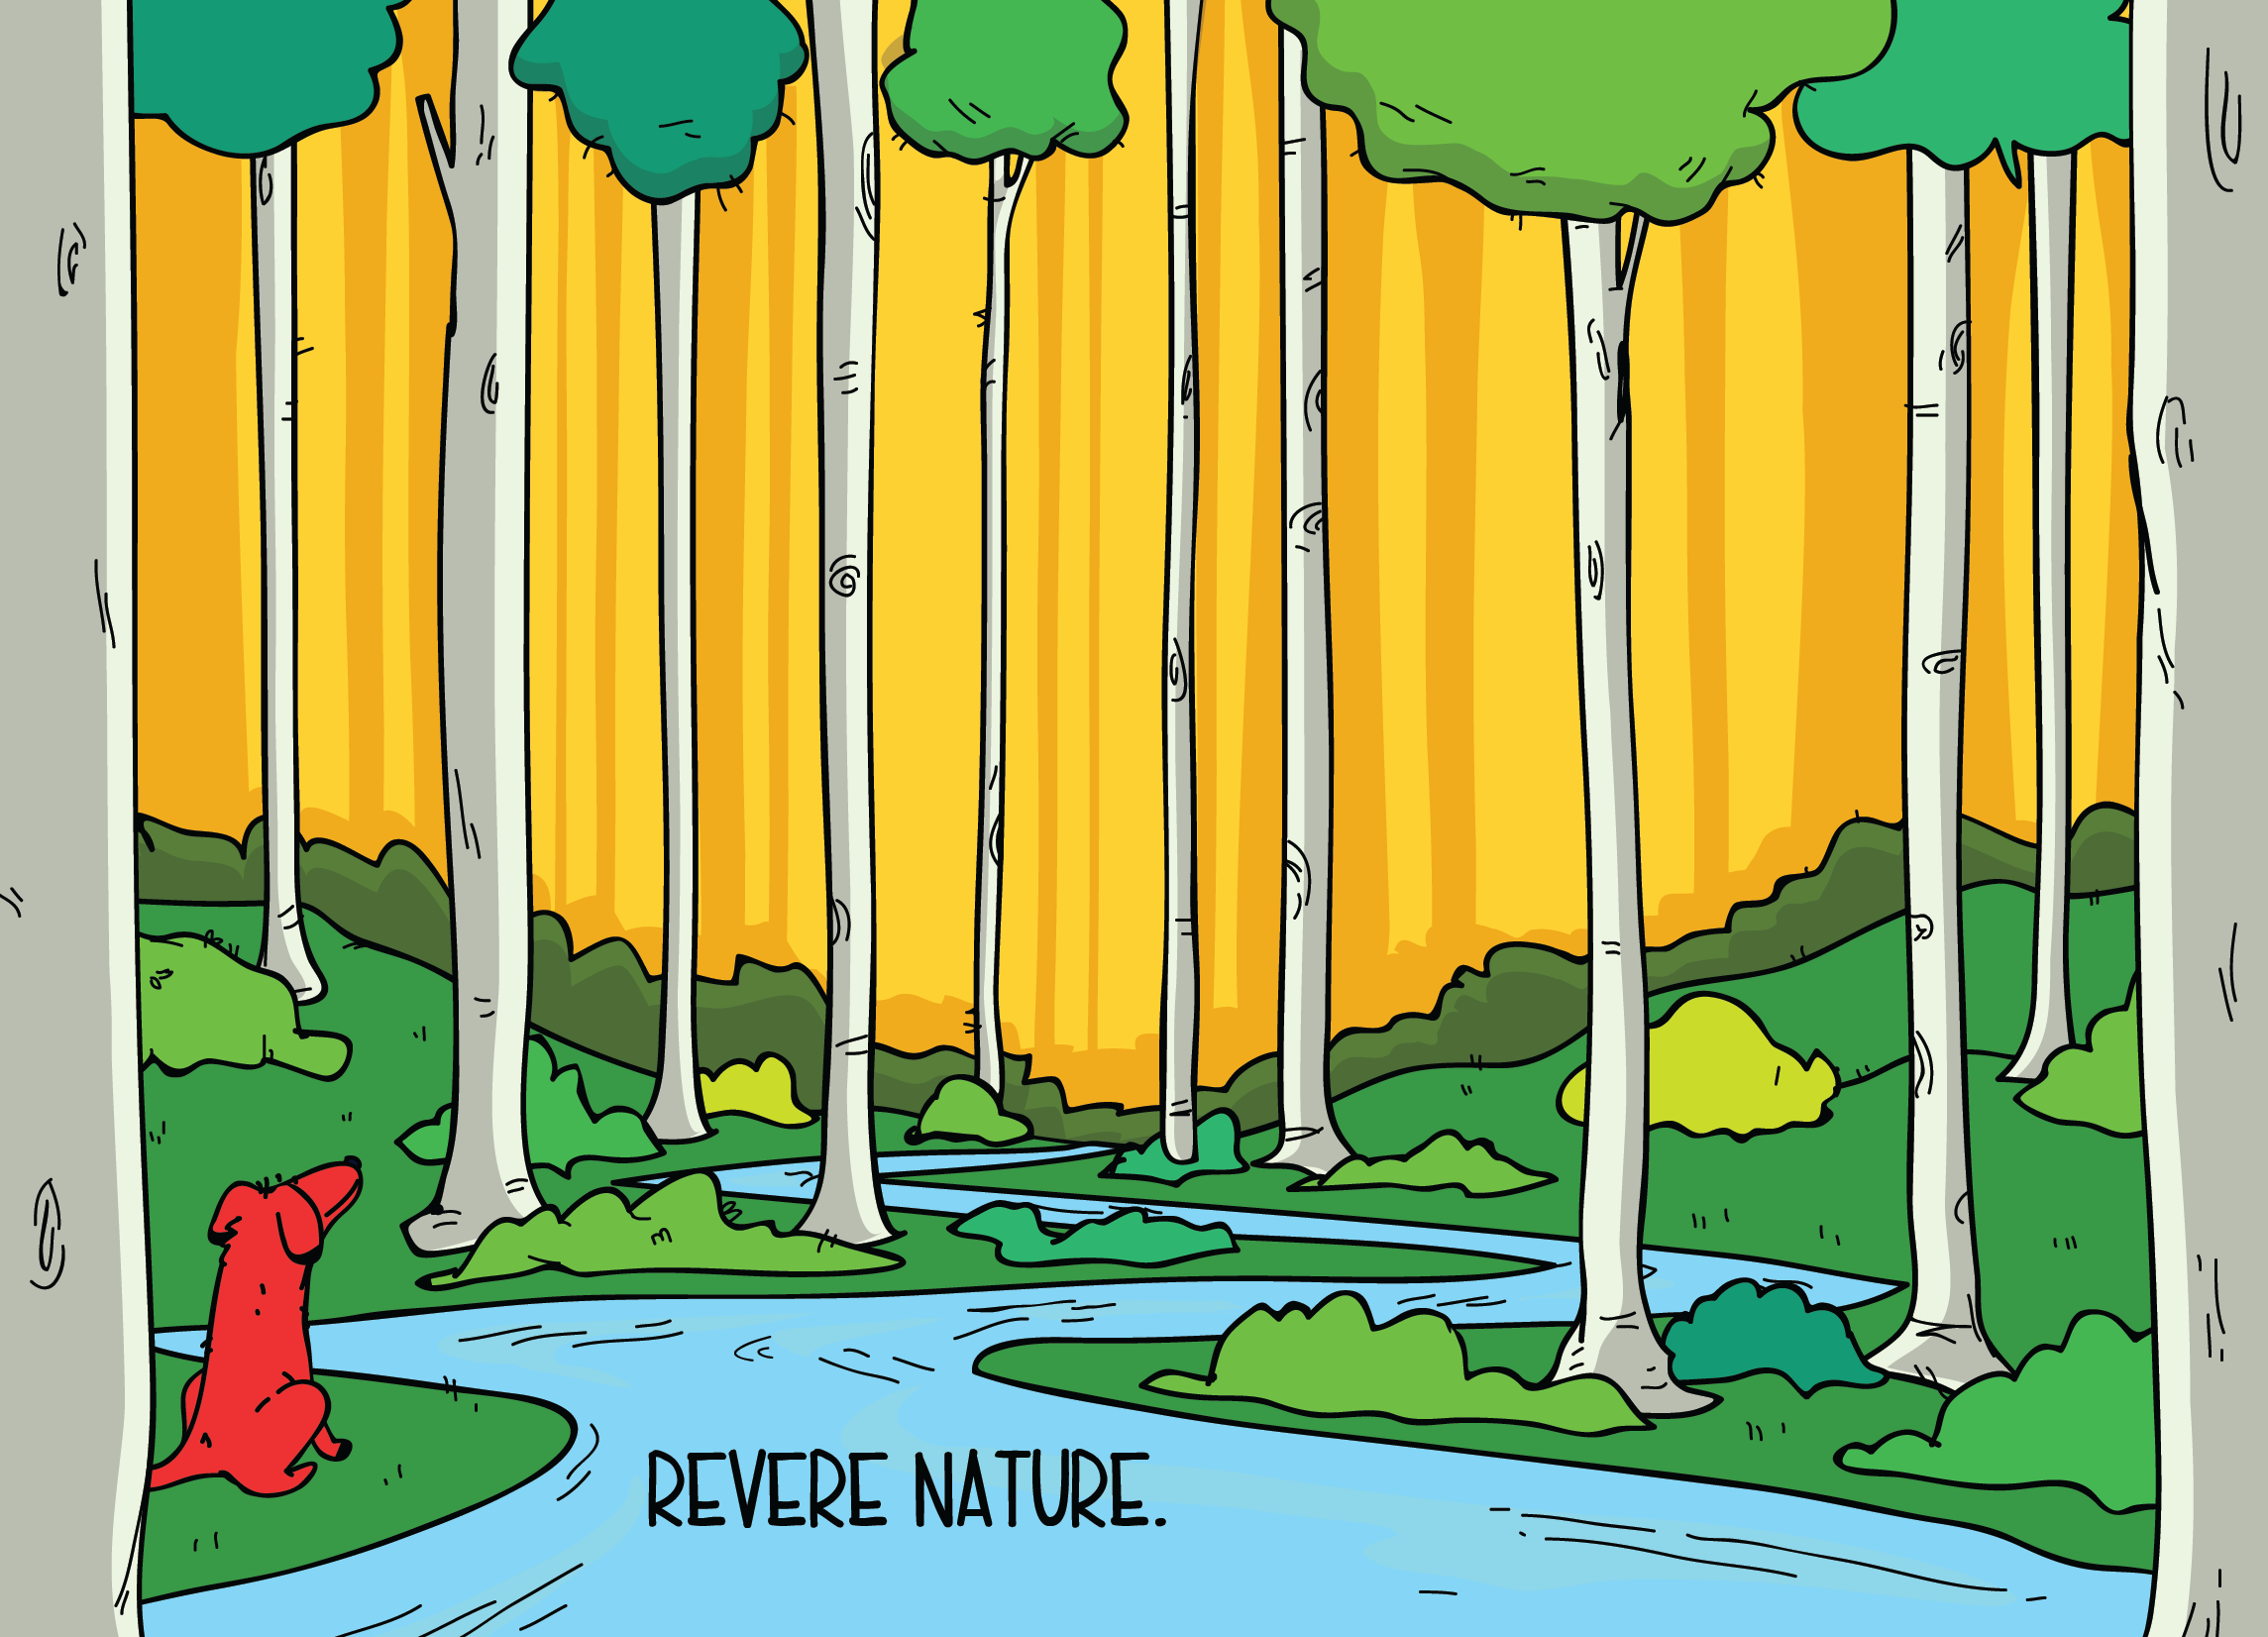 Illustration of dog looking across a forest scene captioned: Revere nature.